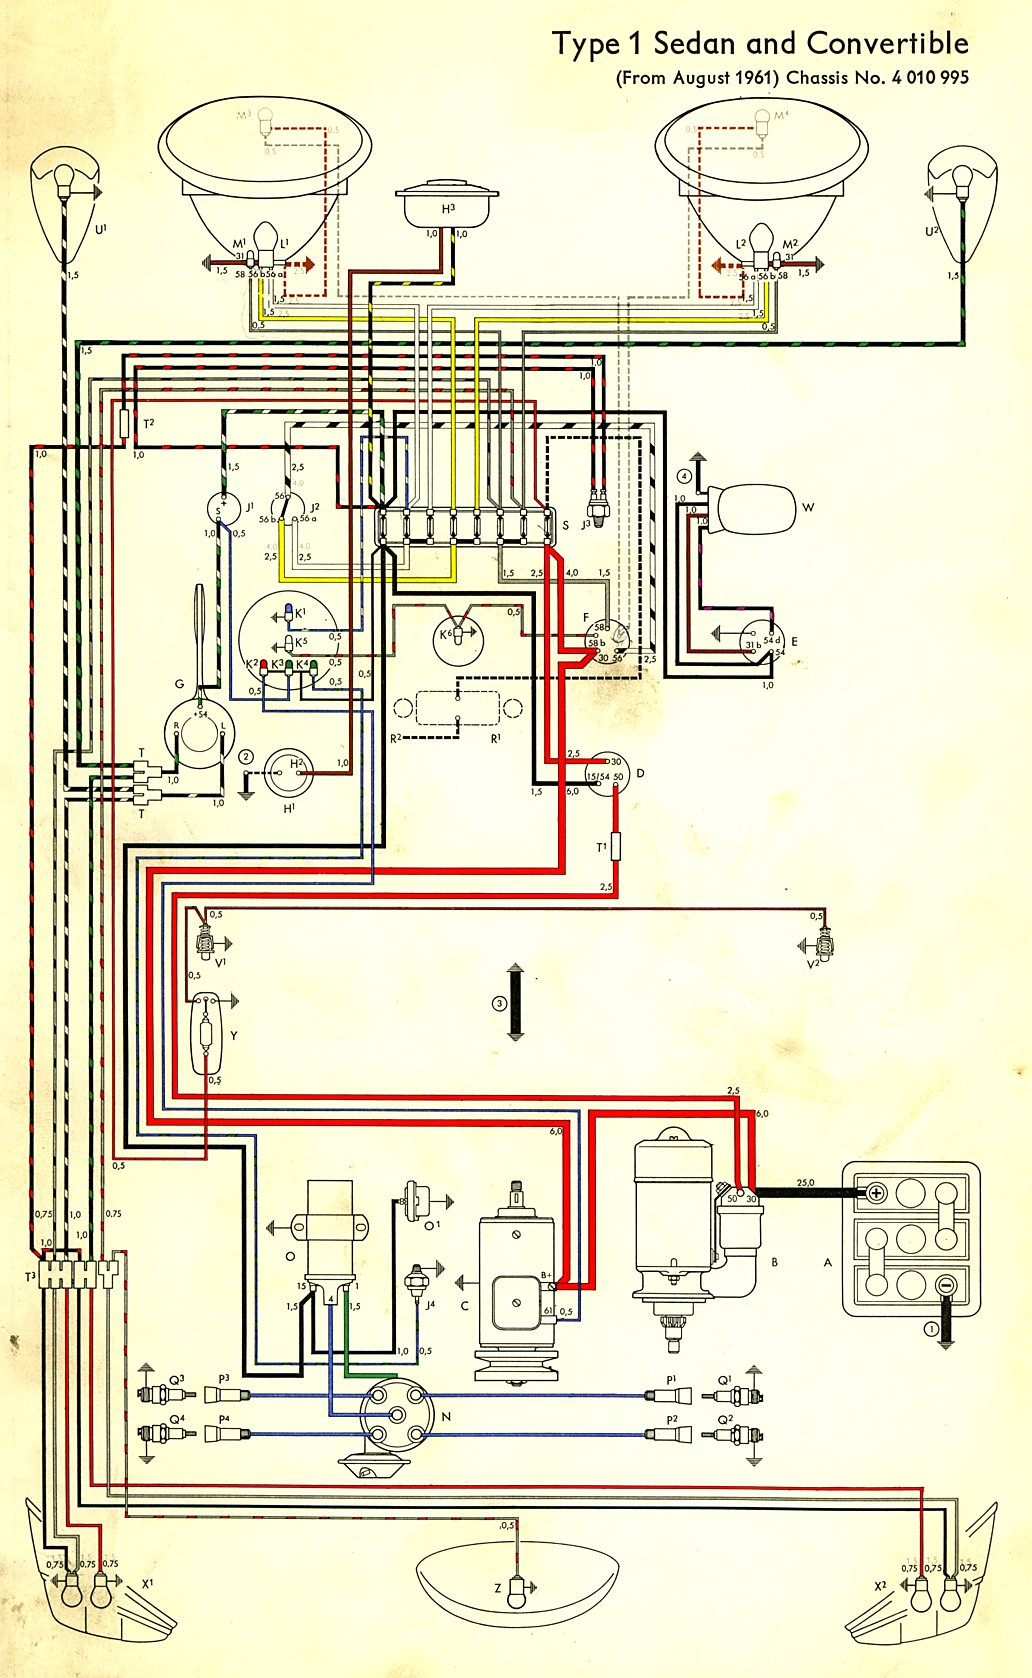 thesamba com type 1 wiring diagrams rh thesamba com VW Buggy Wiring-Diagram VW Buggy Wiring-Diagram